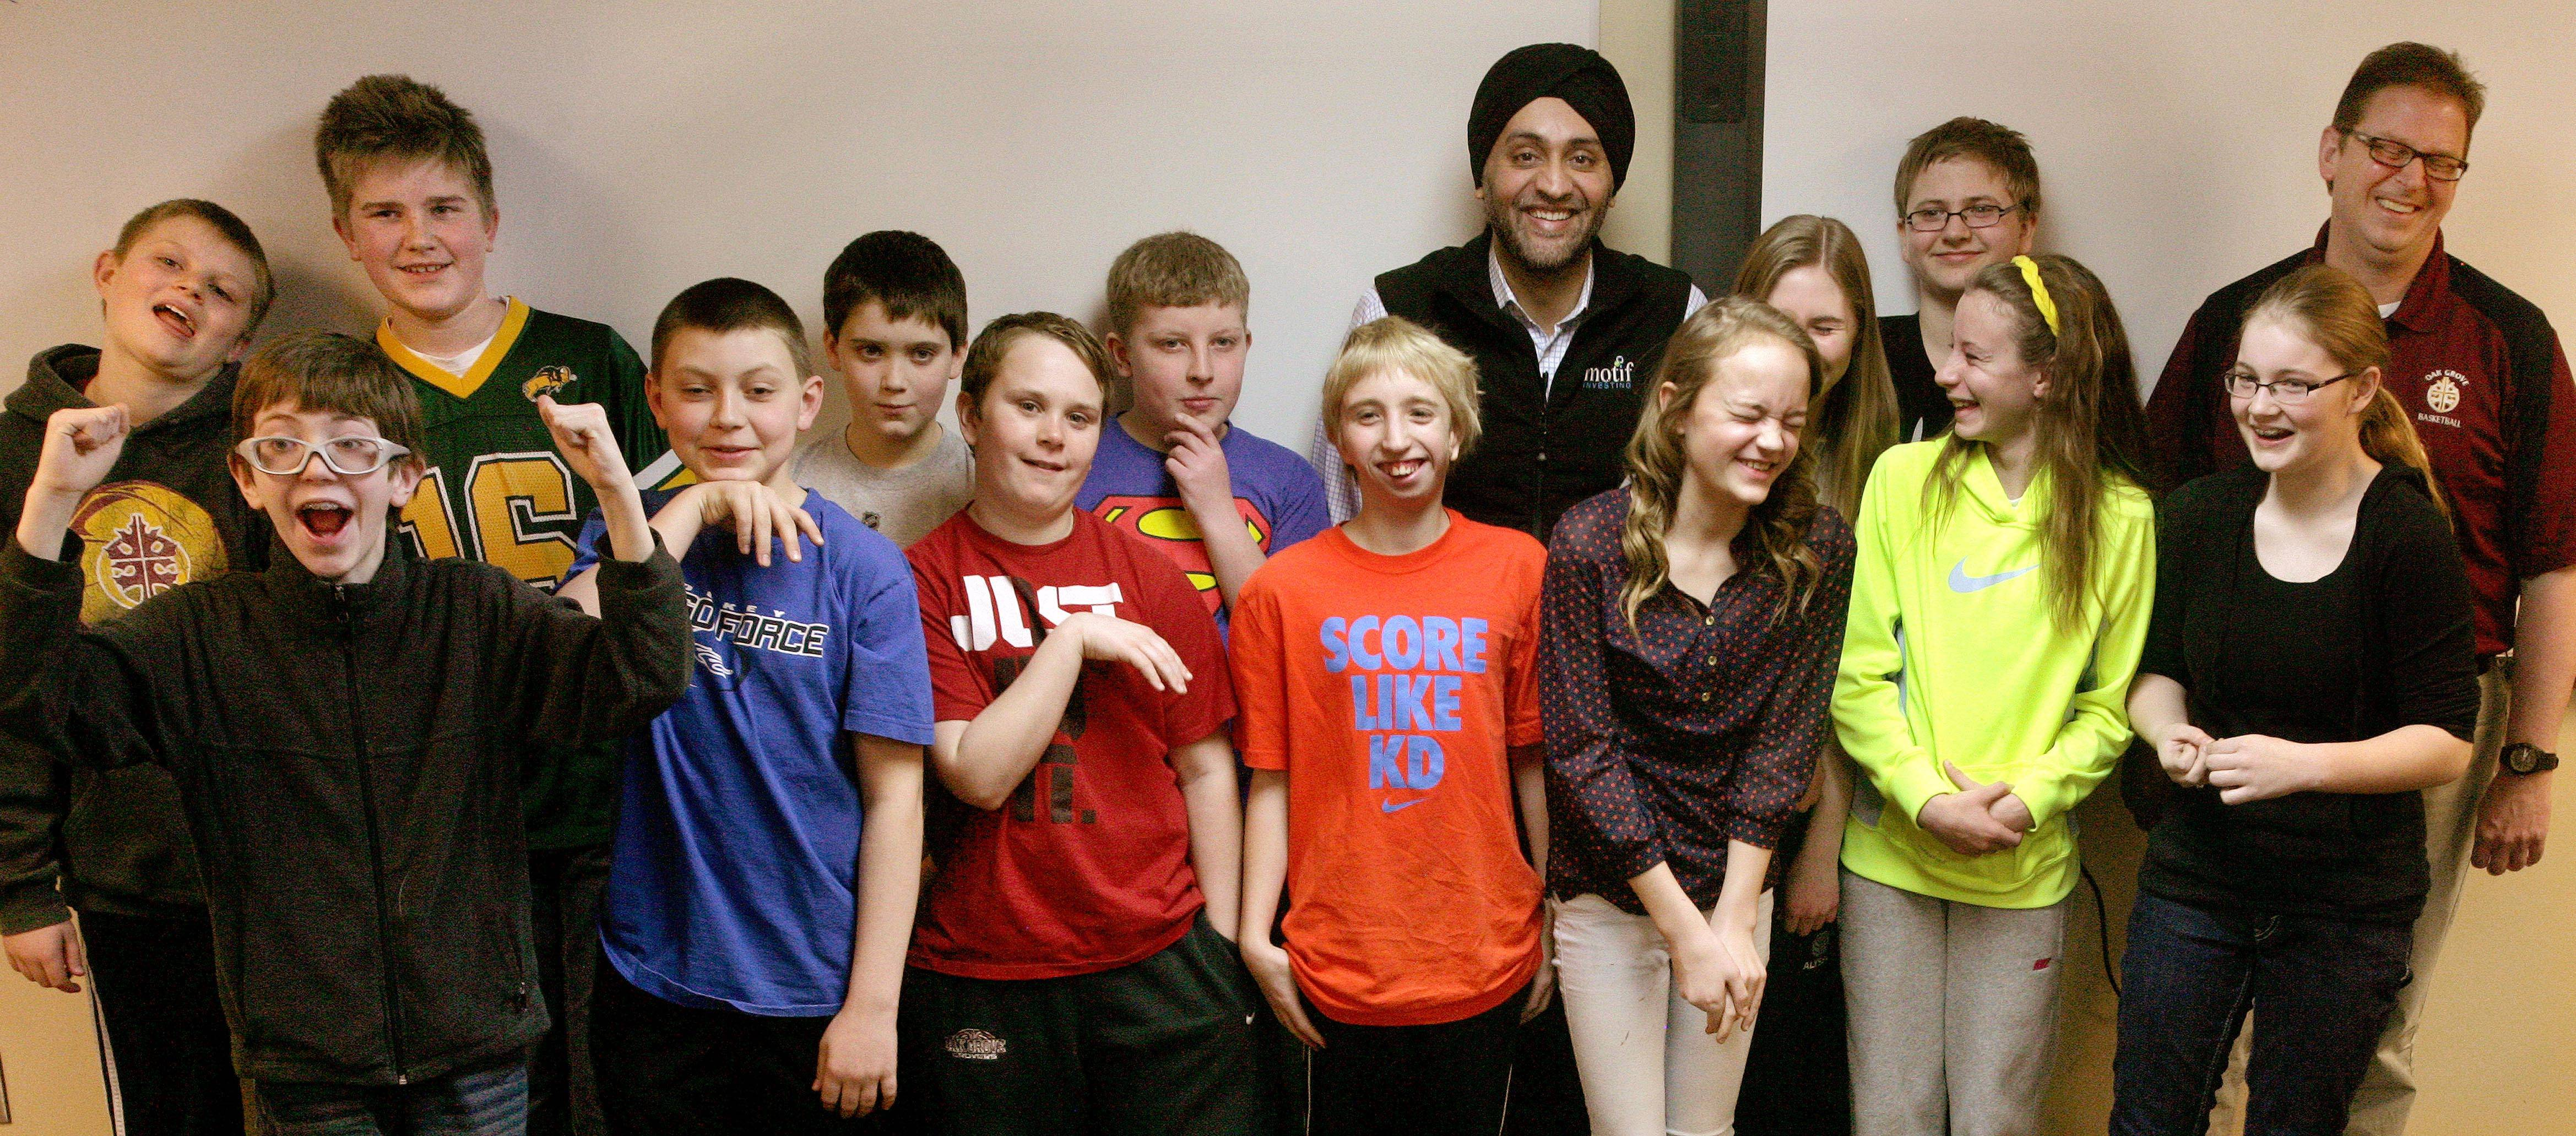 The Math Minions, sixth graders at Oak Grove Middle School in Fargo, N.D., pose with Motif Investing founder Hardeep Walia, center right rear, and math teacher Dave Carlson, right rear. Carlson started a competition between regular and advance math classes at Oak Grove and registered his students with Motif Investing, a company that enables customers to buy baskets of stocks. In the end, Carlson's regular math class yielded a nearly 22 percent gain and trounced every university club participating in the contest.